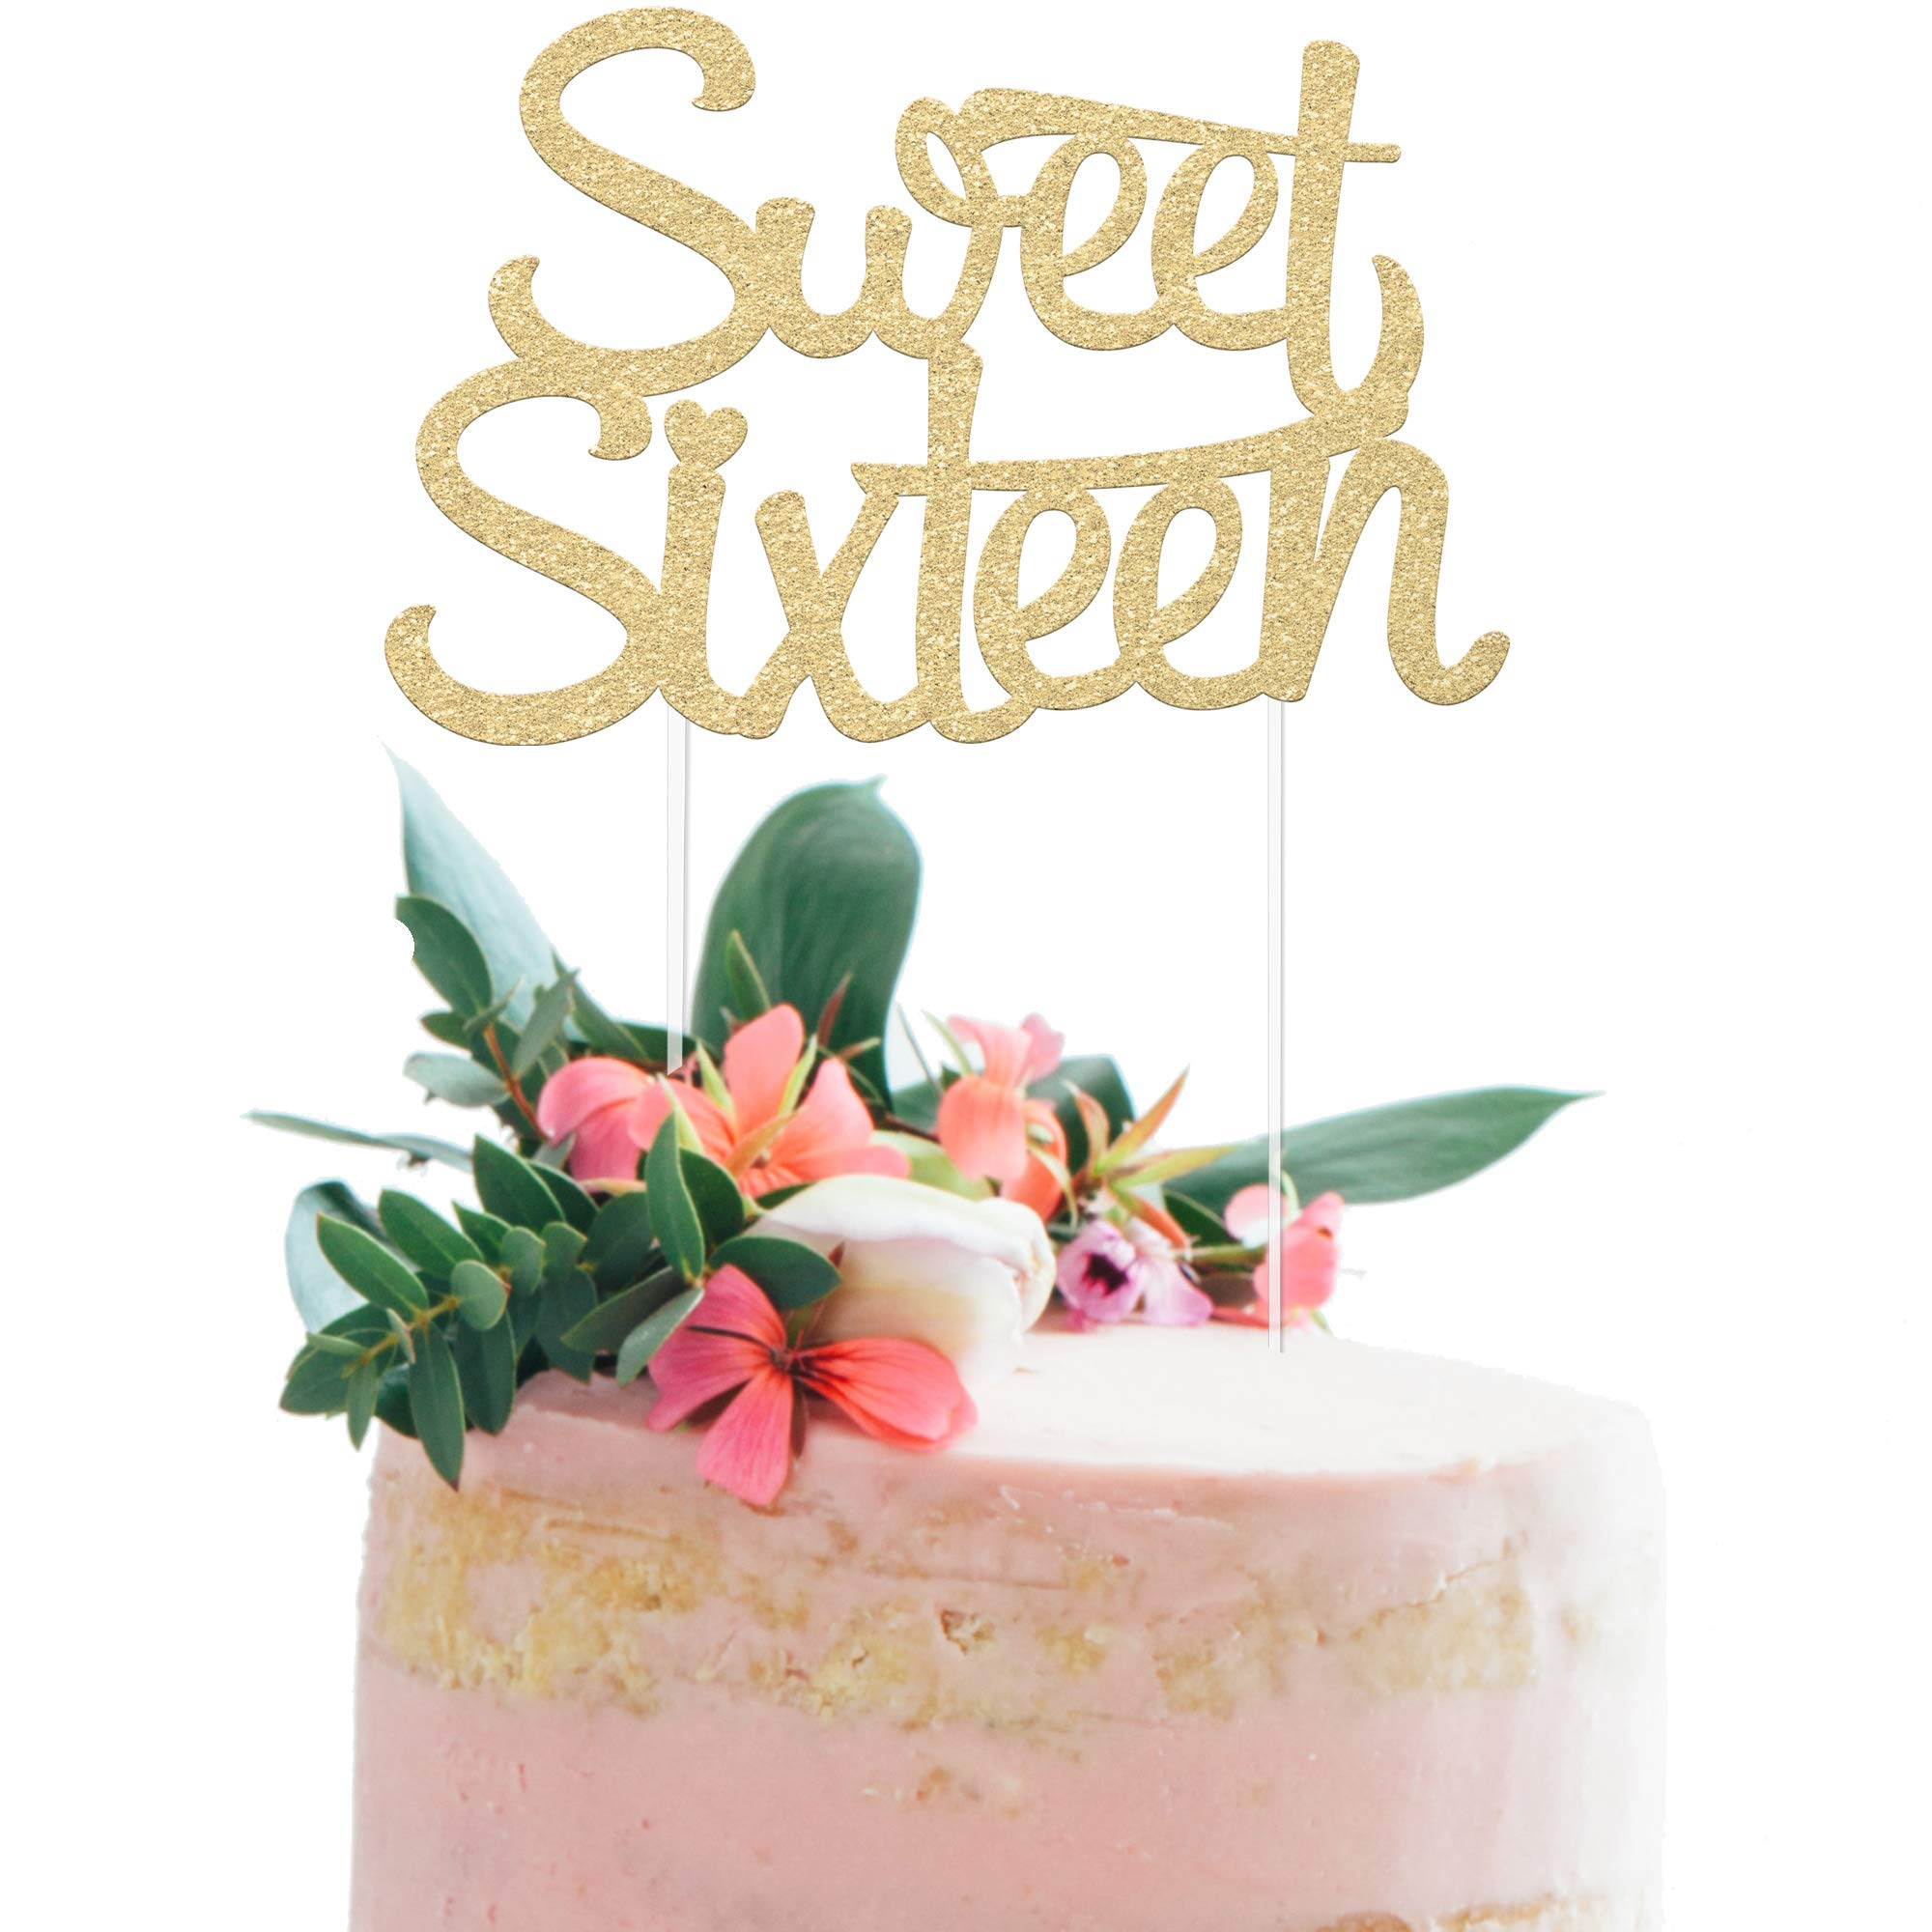 """16th Birthday Cake Topper - SWEET SIXTEEN - 7"""" x 4.5"""" Double Sided Champagne Gold Glitter Cardstock - Perfect Touch for Your BDay Decorations - Food-Safe & Eco-Friendly Stand by Merry Expressions"""